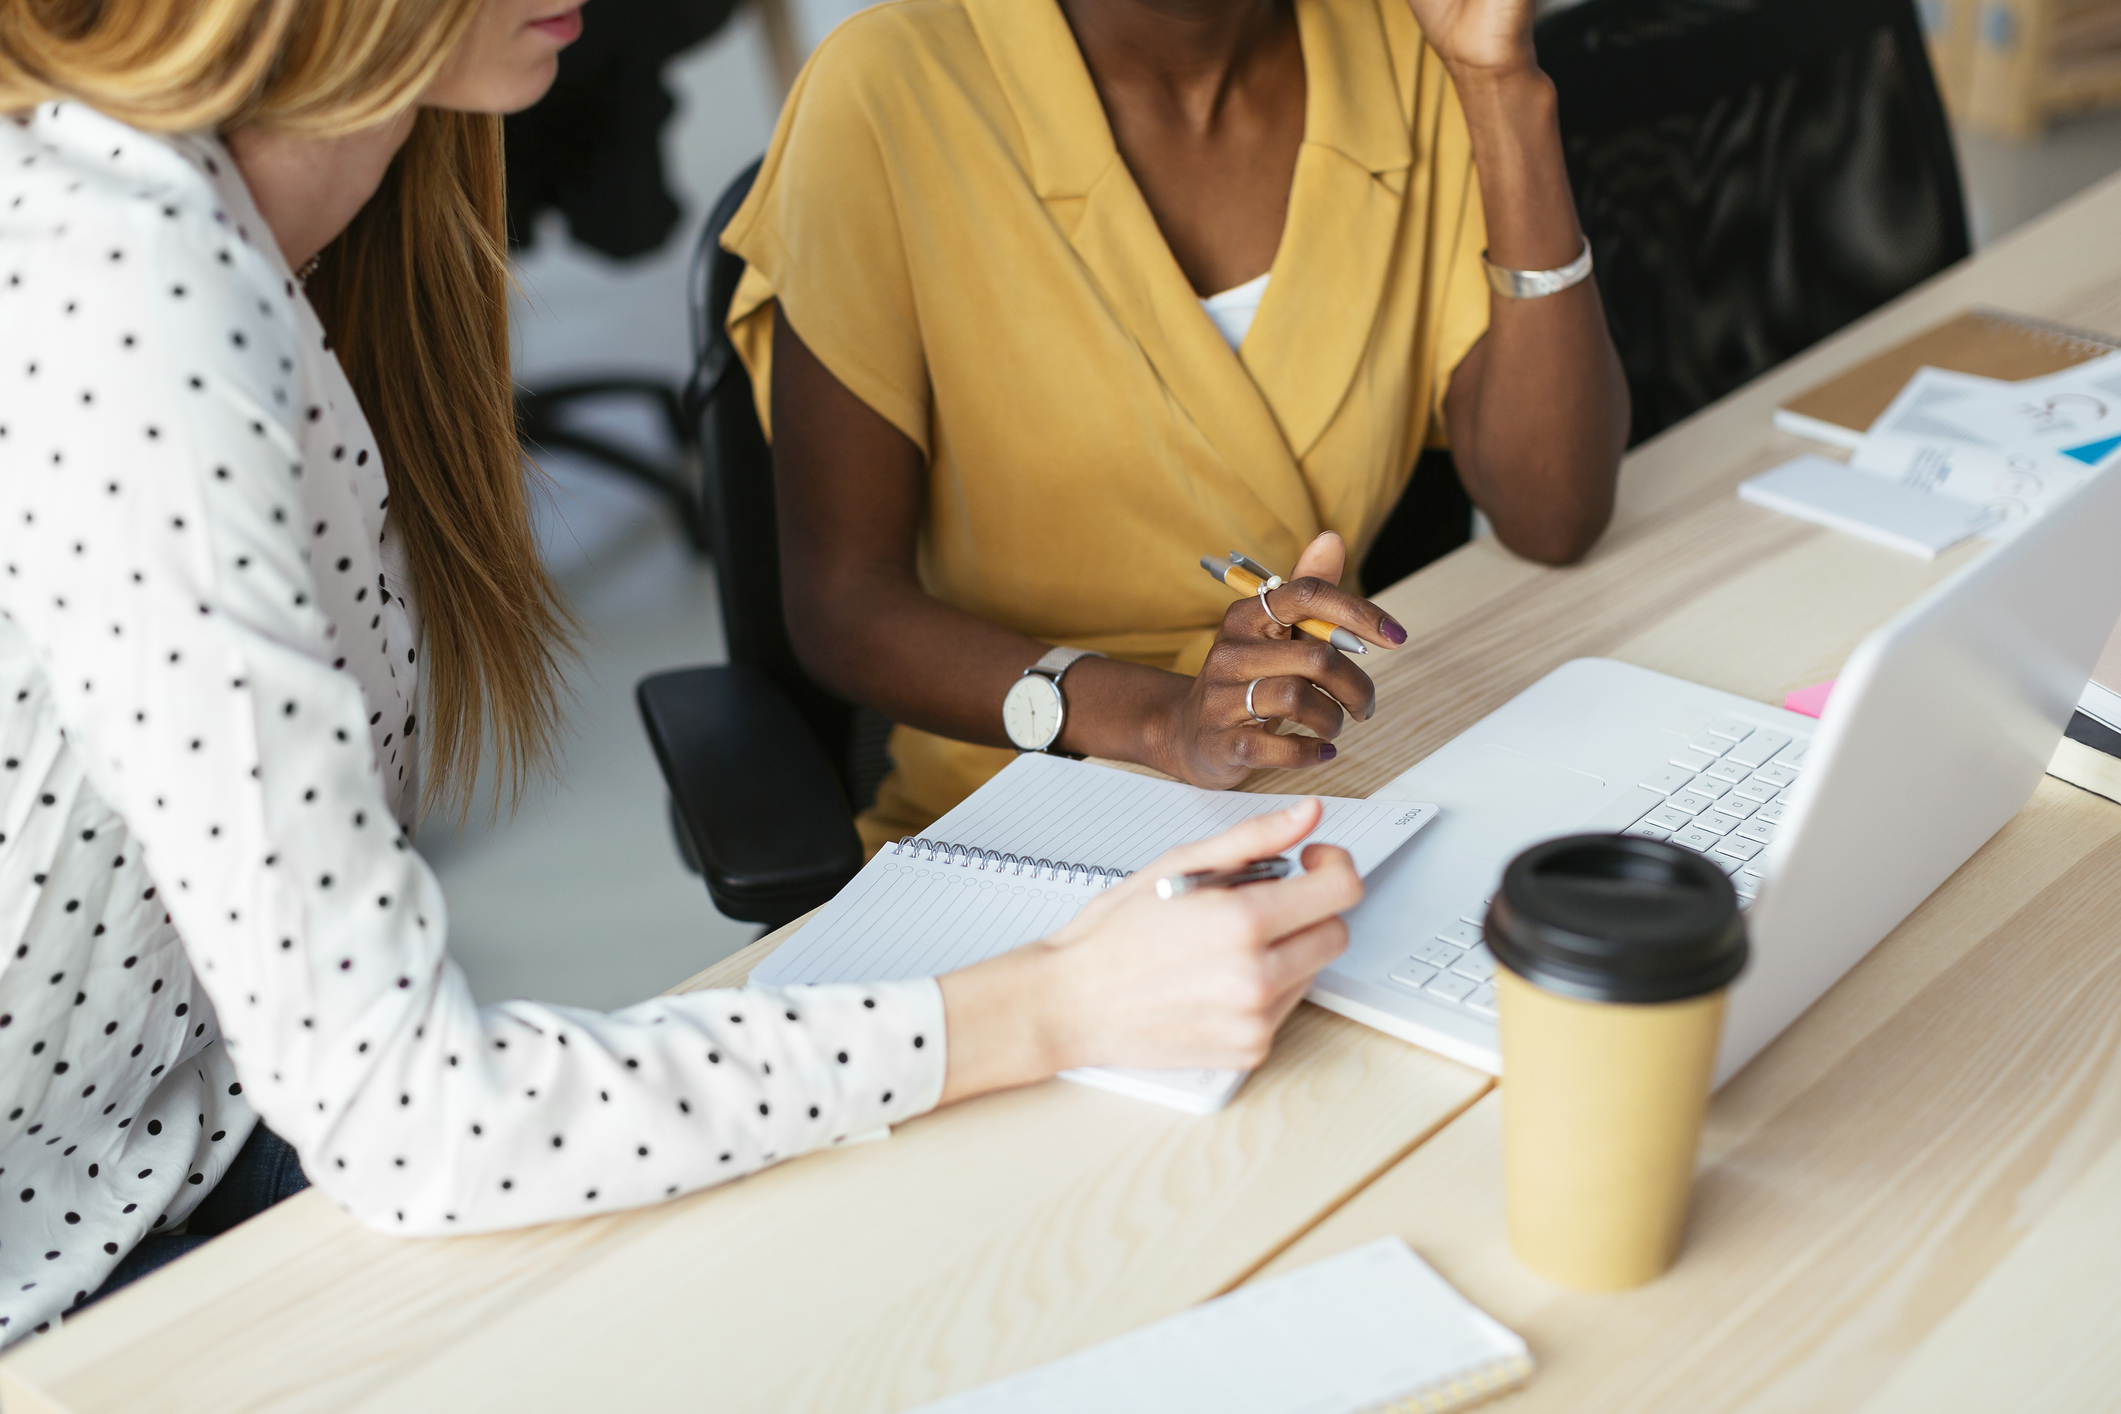 How to Talk to a Colleague About Their Mental Health